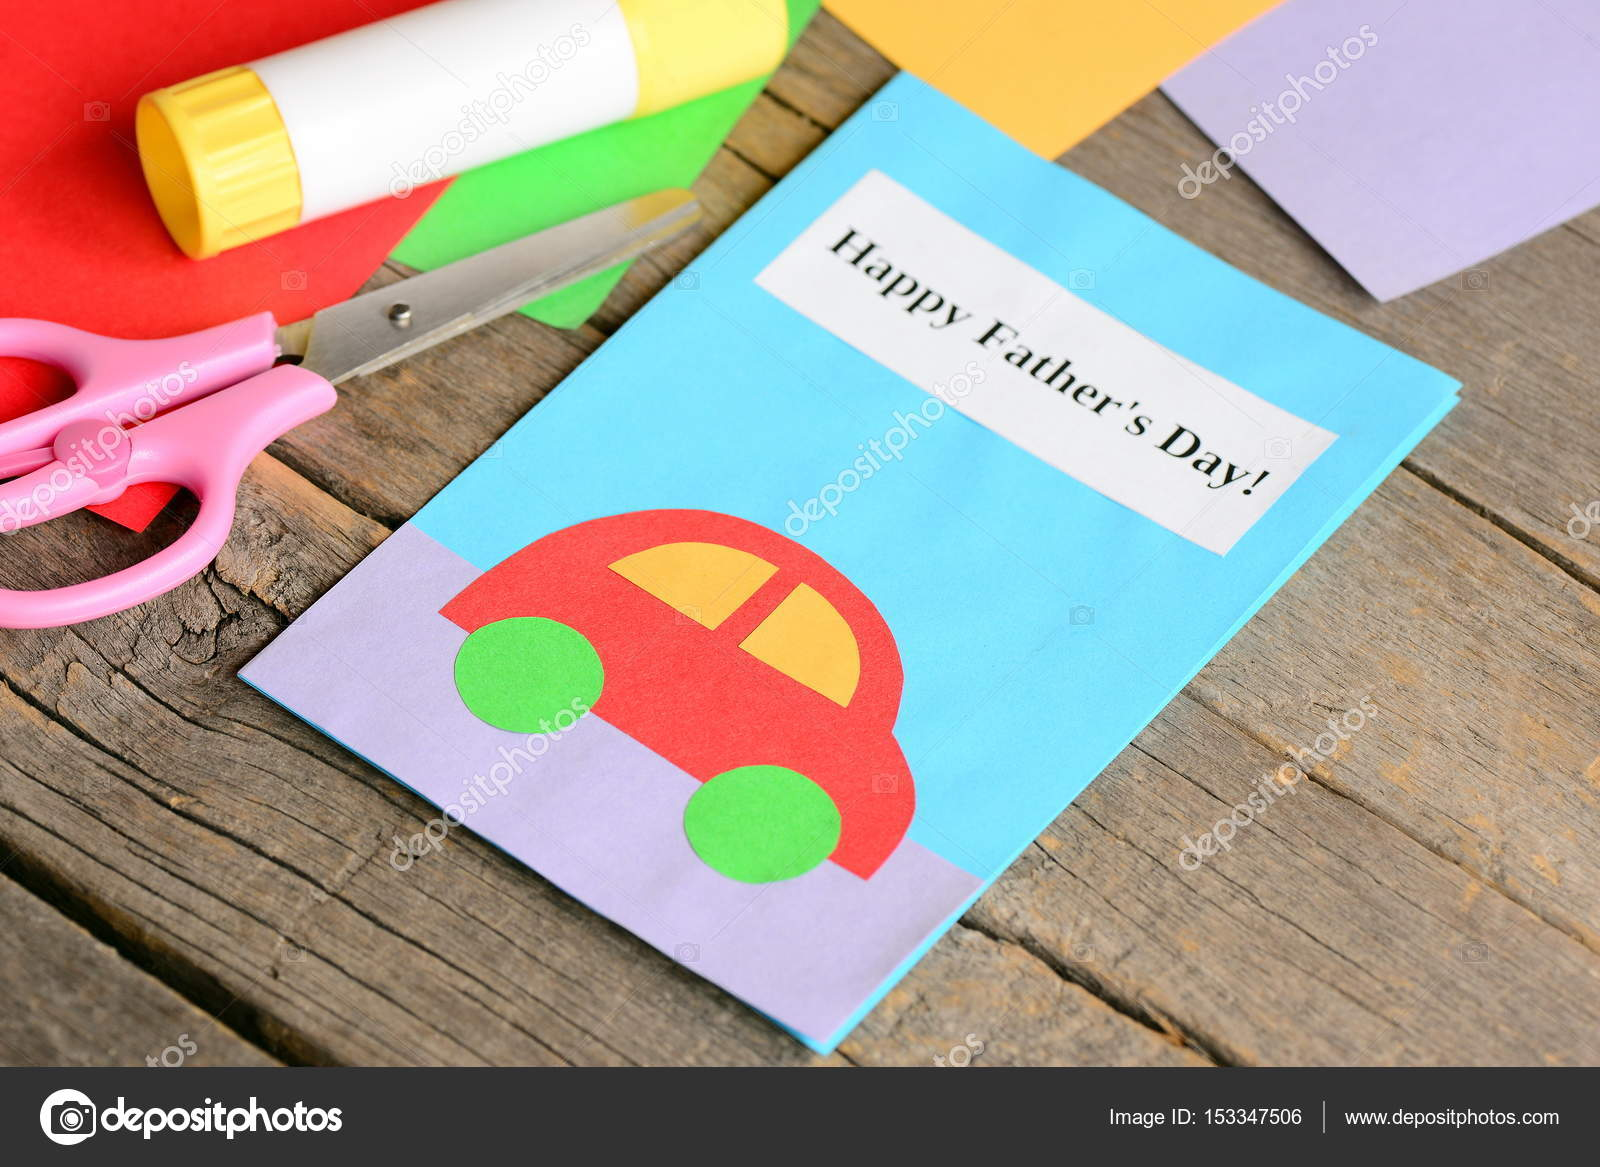 Happy fathers day greeting card colored paper sheets scissors arts and crafts projects for kids greeting card crafts for kids fathers day cards cute fathers day craft simple paper craft for children to do m4hsunfo